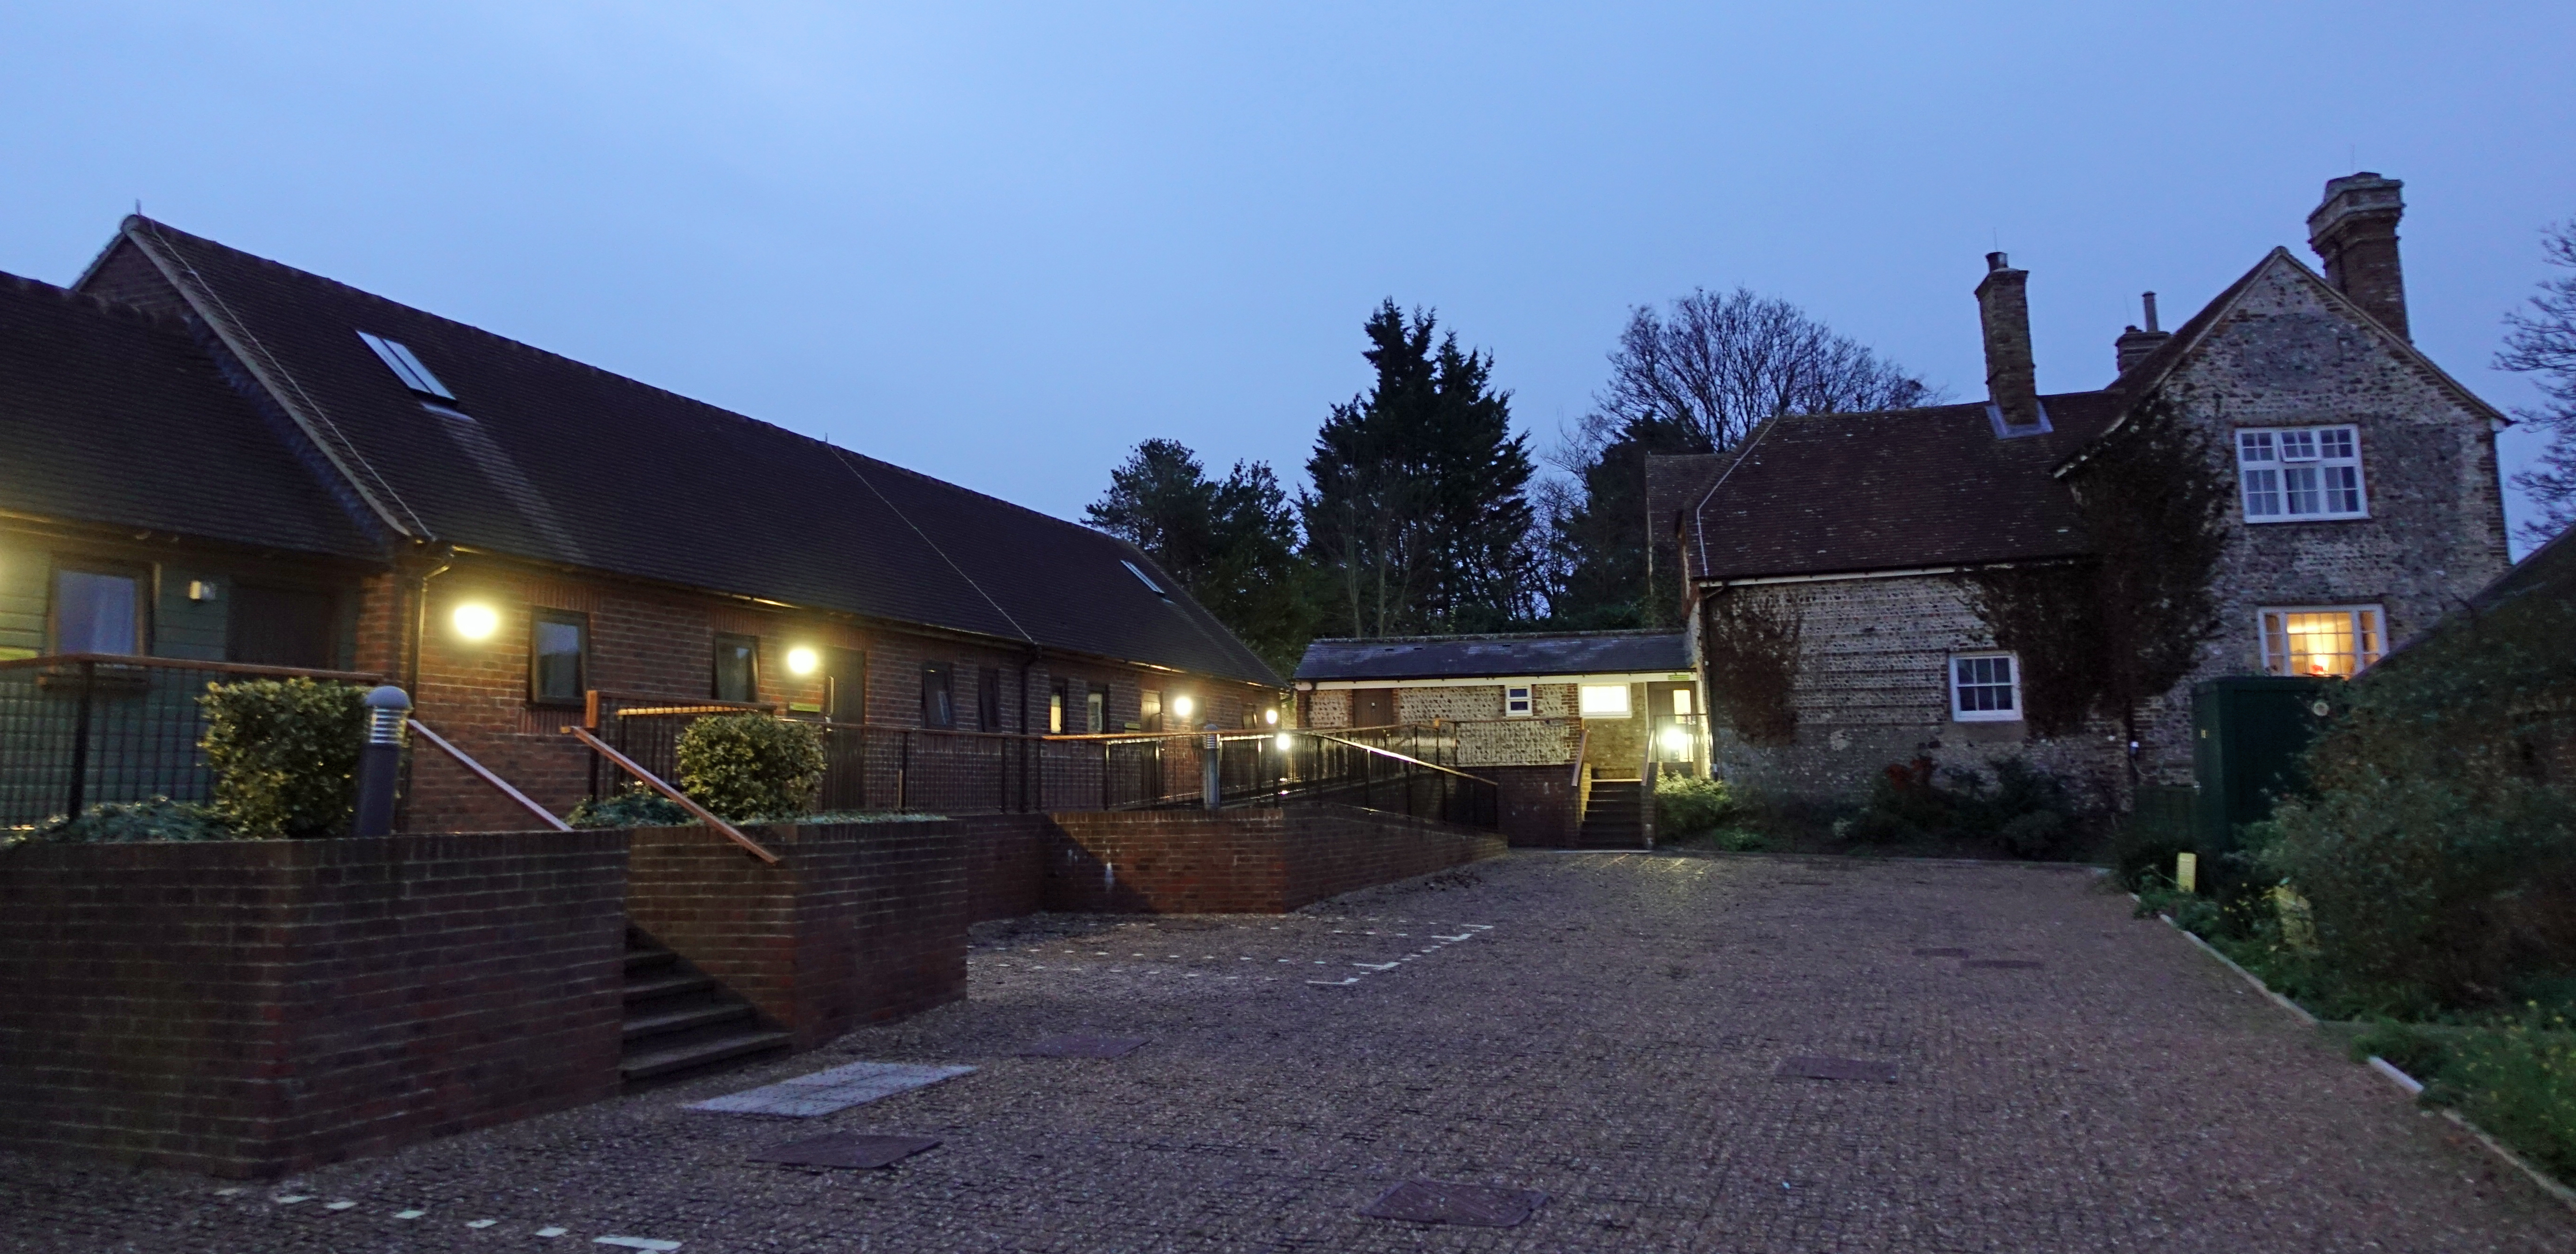 Accommodation buildings at YHA South Downs